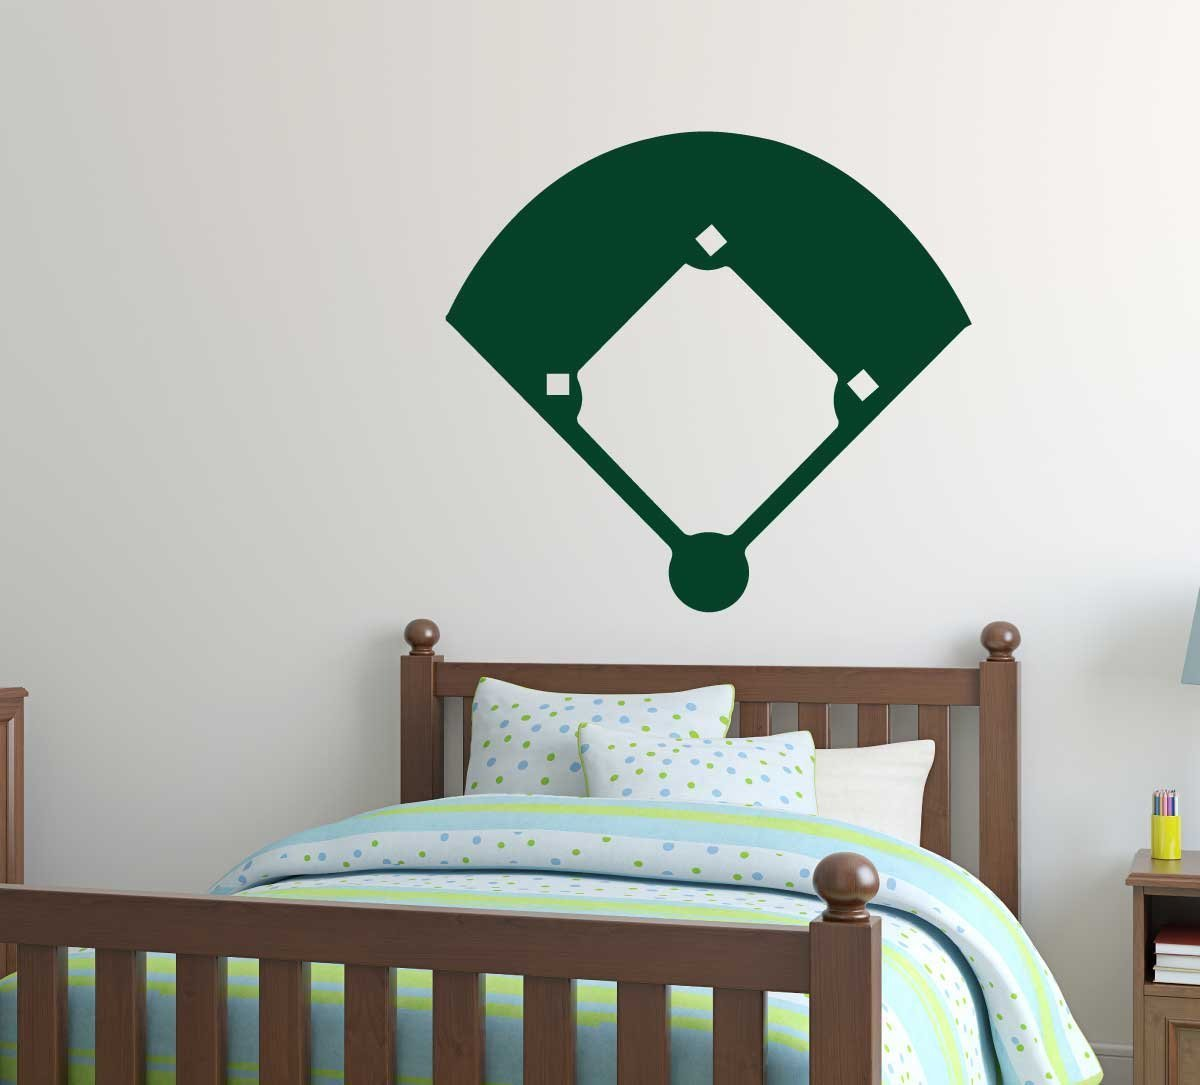 Baseball Wall Decals Baseball/Softball Field Sticker Design For Kids Room,  Sports Fans,